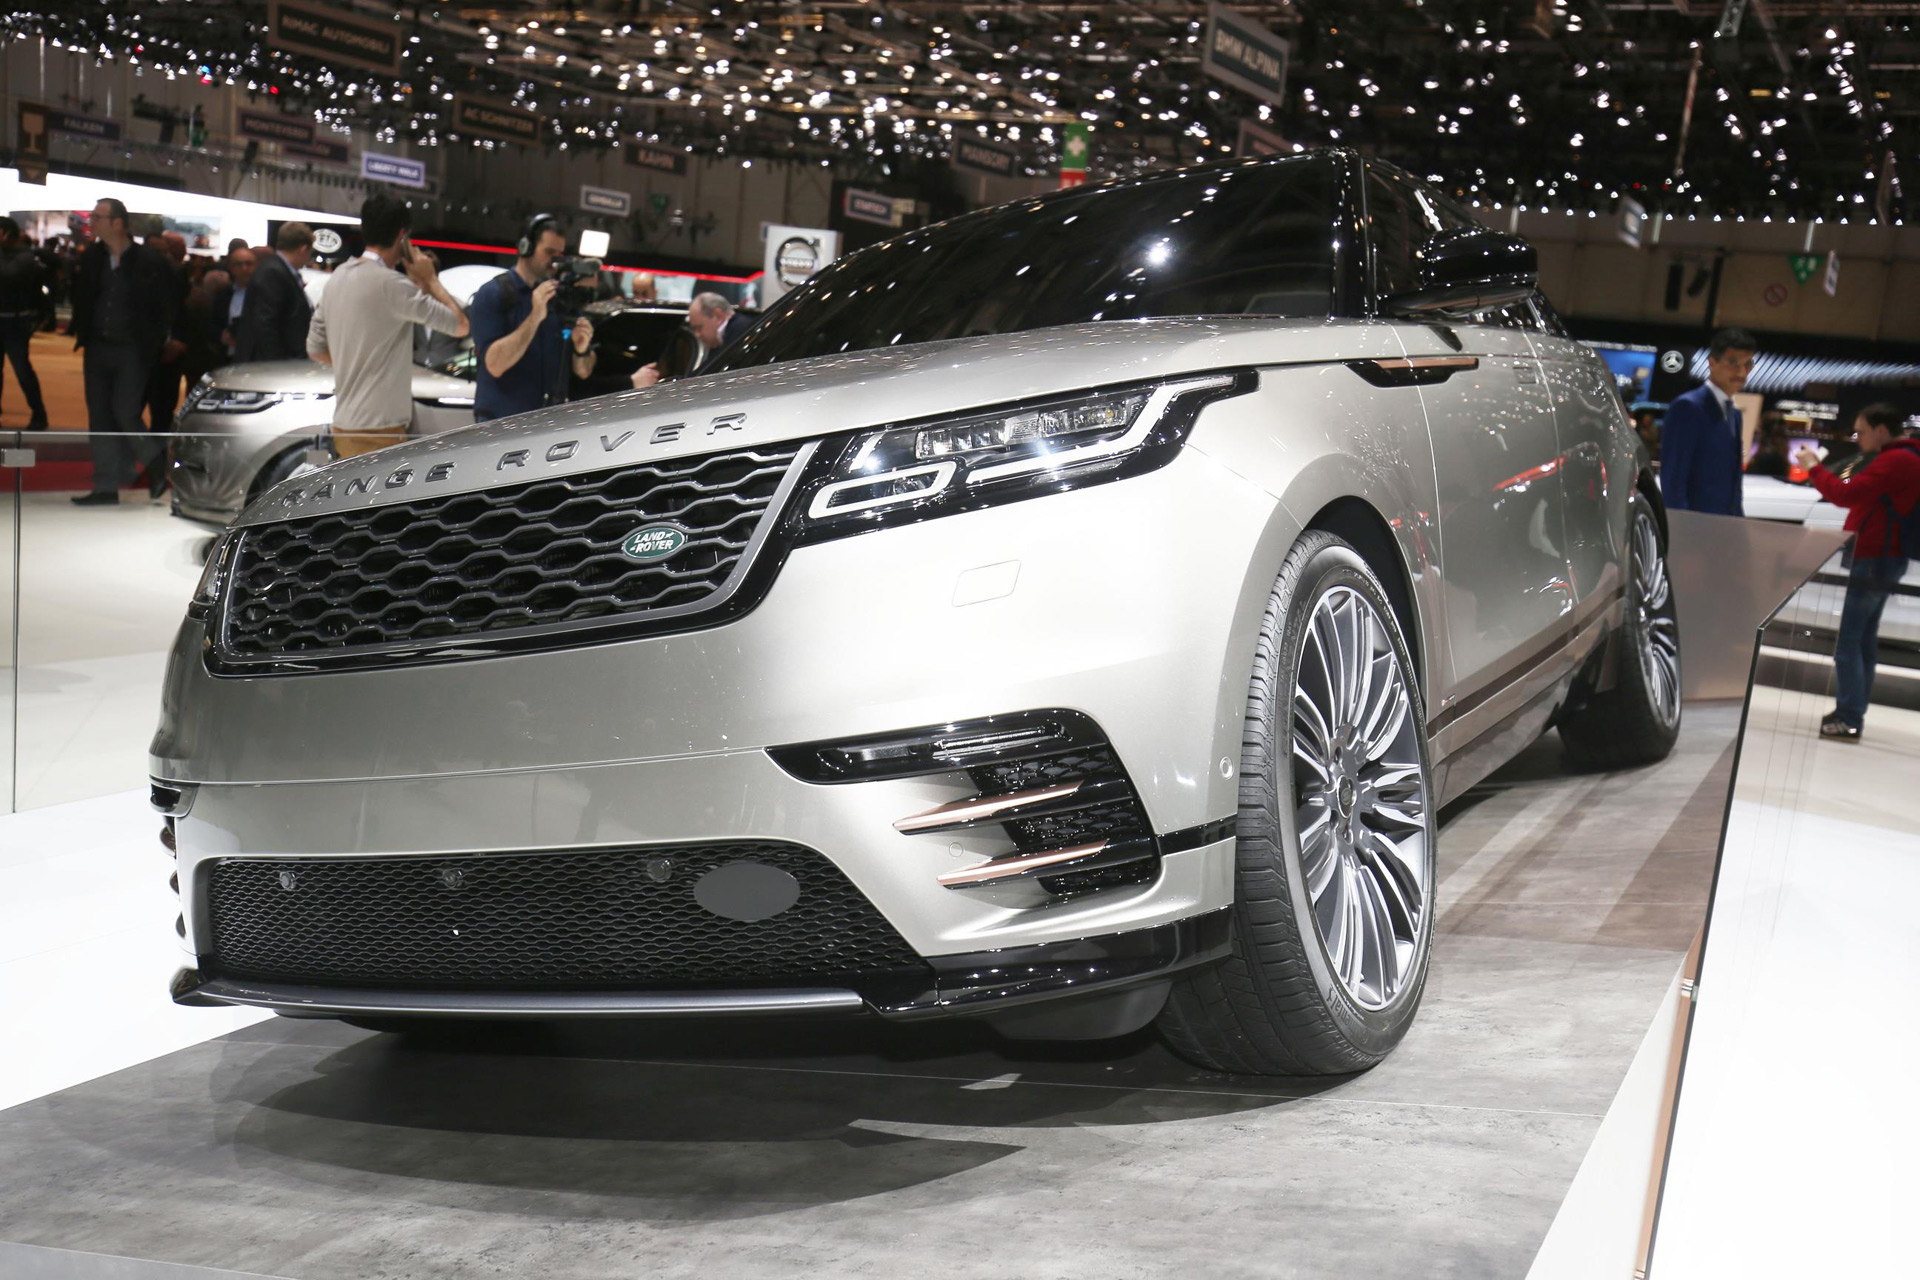 2018 land rover range rover velar revealed priced from 50 895. Black Bedroom Furniture Sets. Home Design Ideas